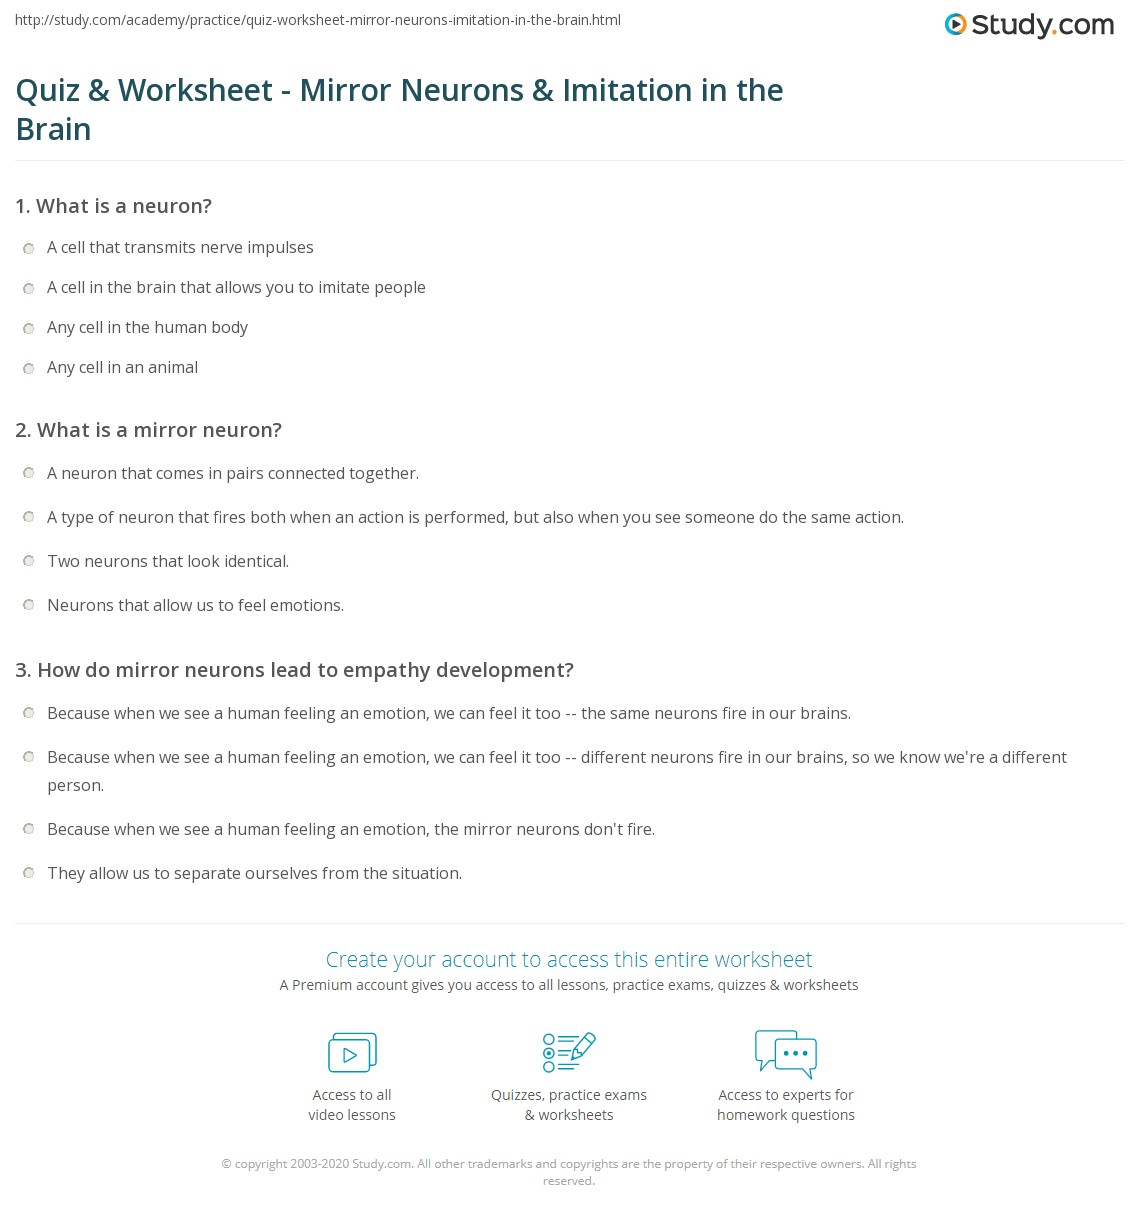 Quiz Worksheet Mirror Neurons Imitation In The Brain Study